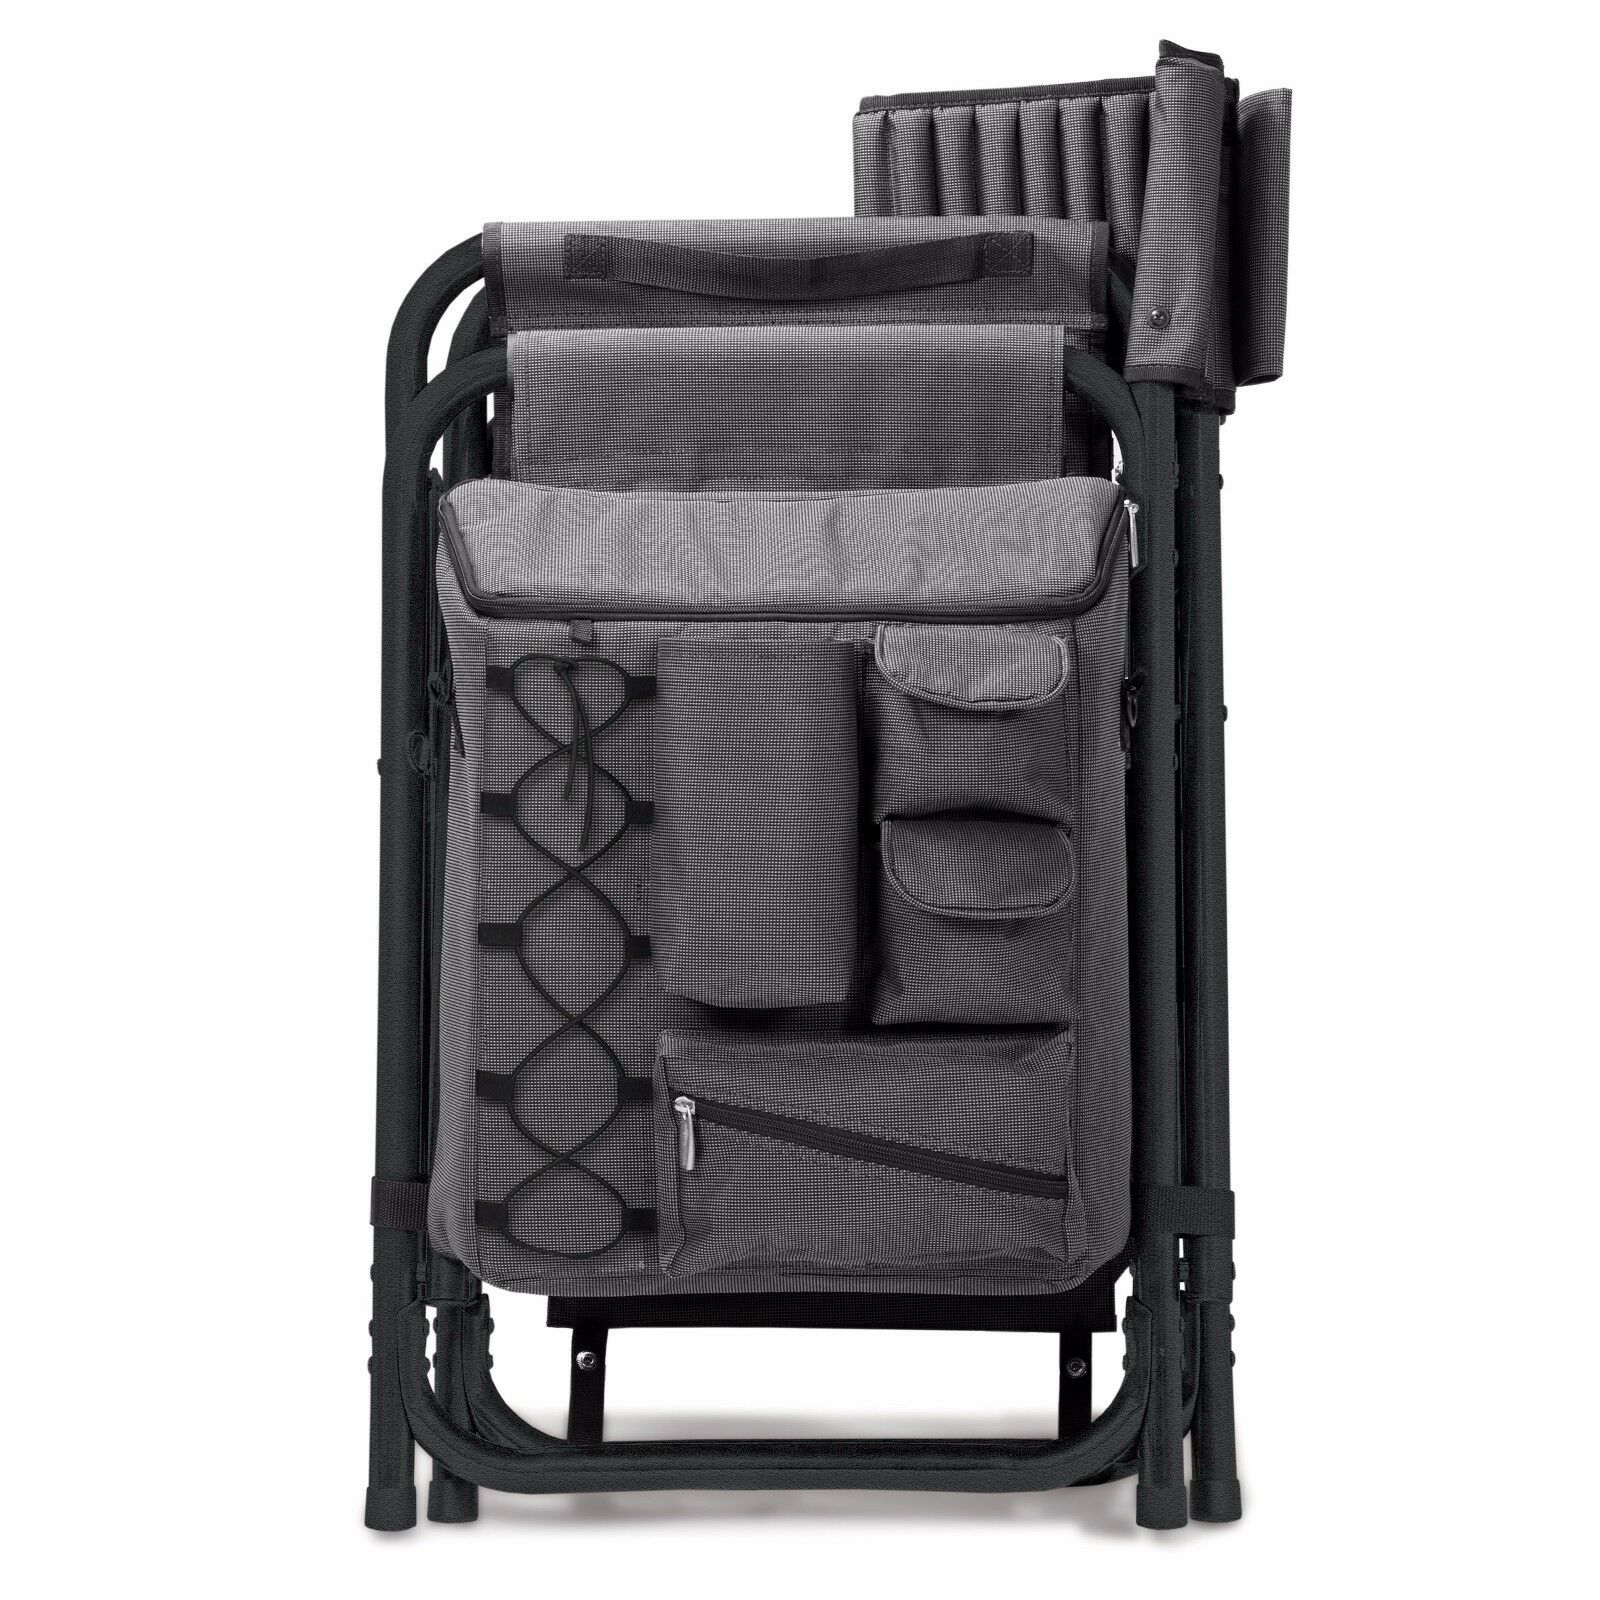 Portable Sports Soccer Football Tailgating Chair Storage Coach